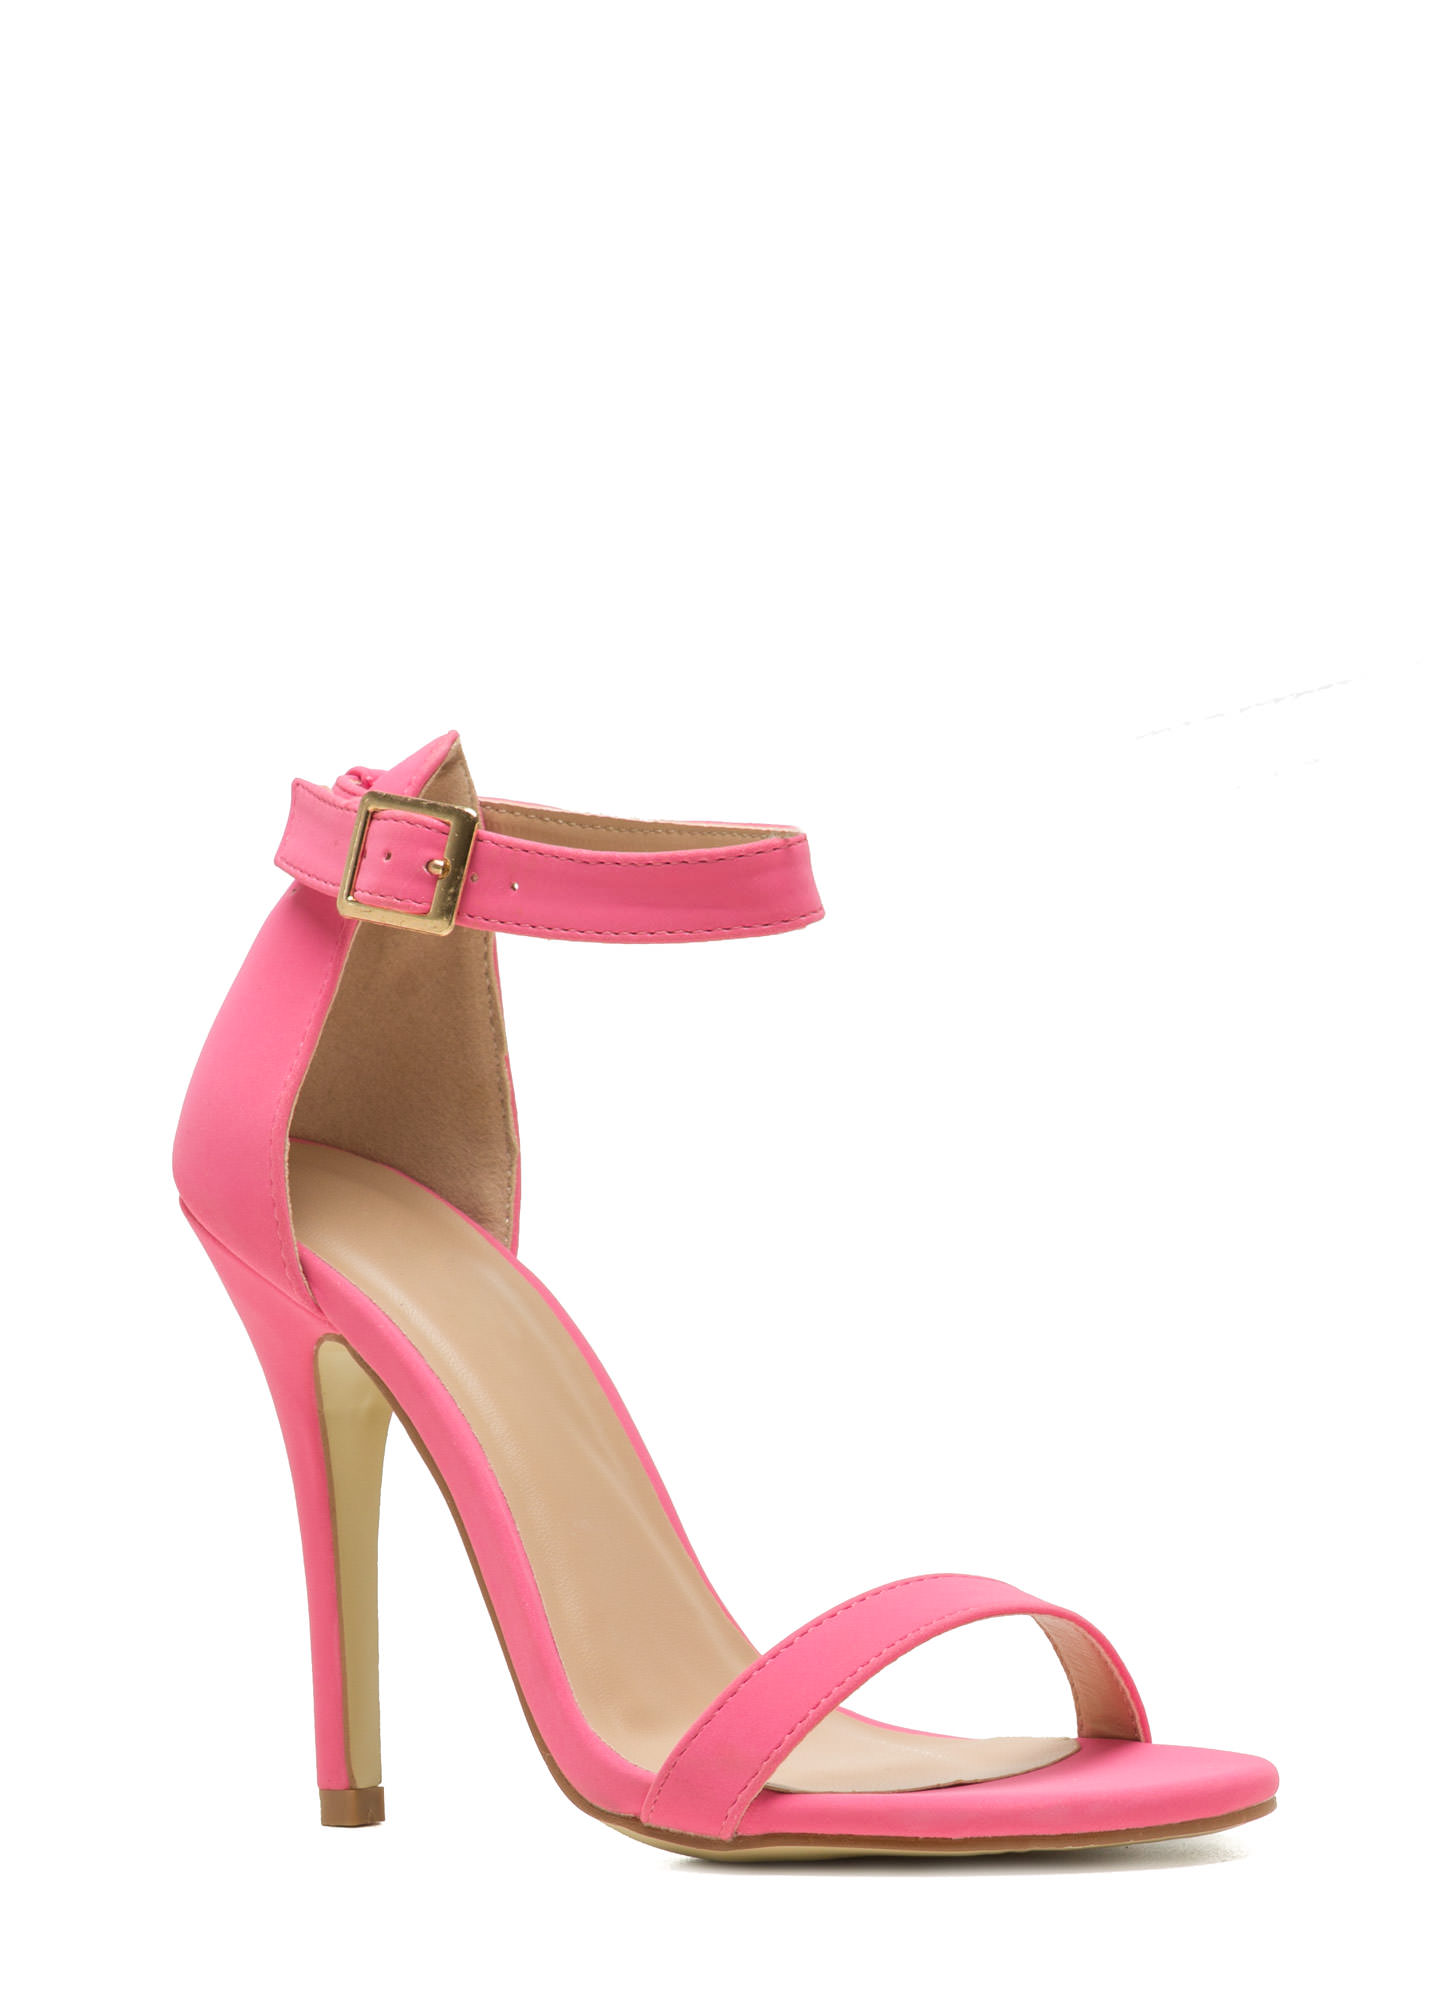 Less Is More Single-Strap Heels BUBBLEGUM